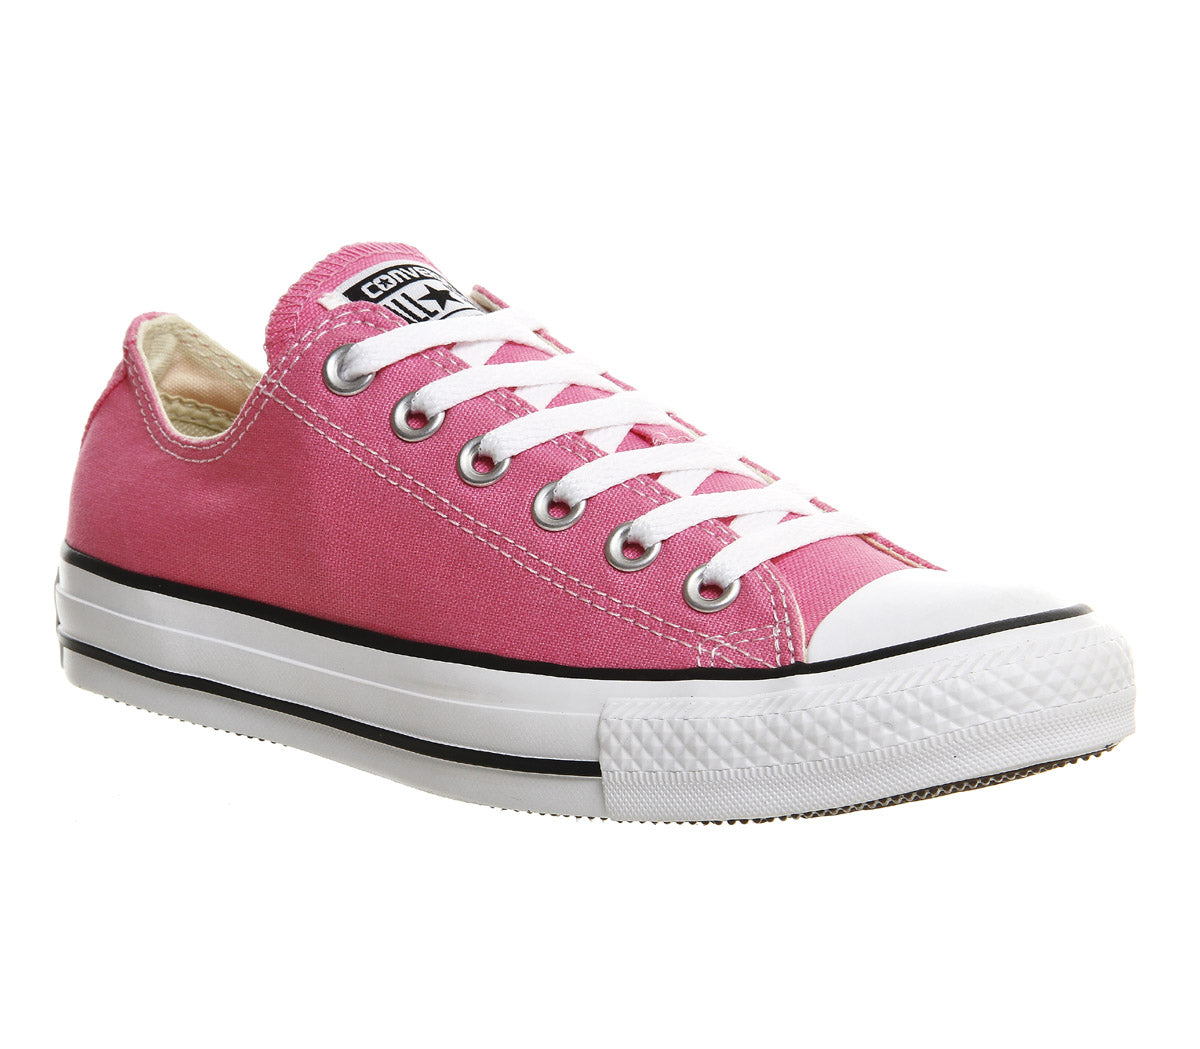 3de754916a59 Womens Converse All Star Low Pink Canvas – OFFCUTS SHOES by OFFICE